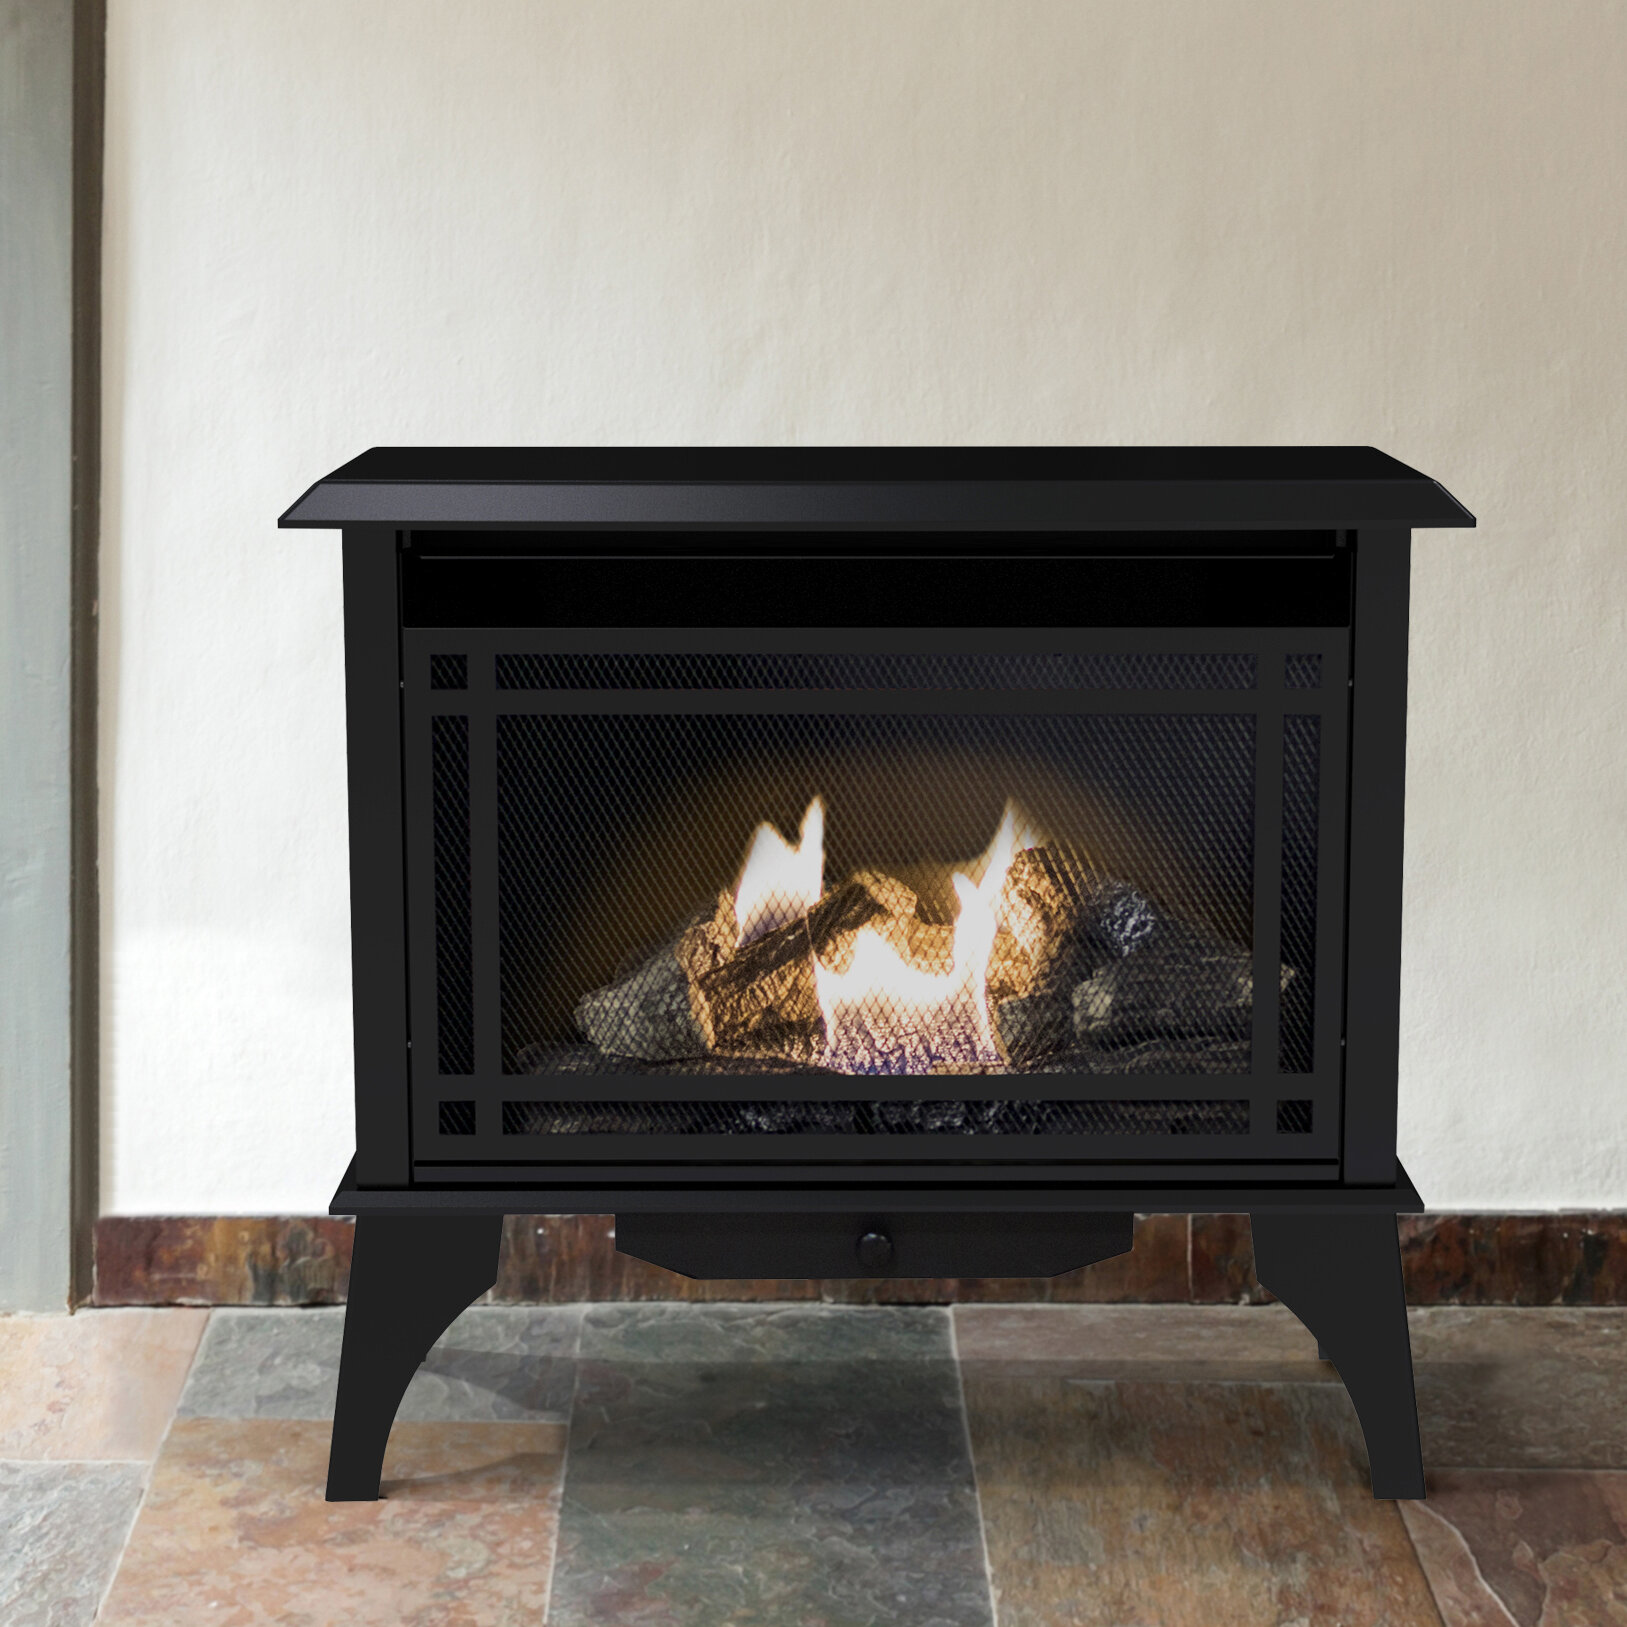 ped rec product vented birchwood vent birch propane heat kozy fireplace gas direct heatwave stove